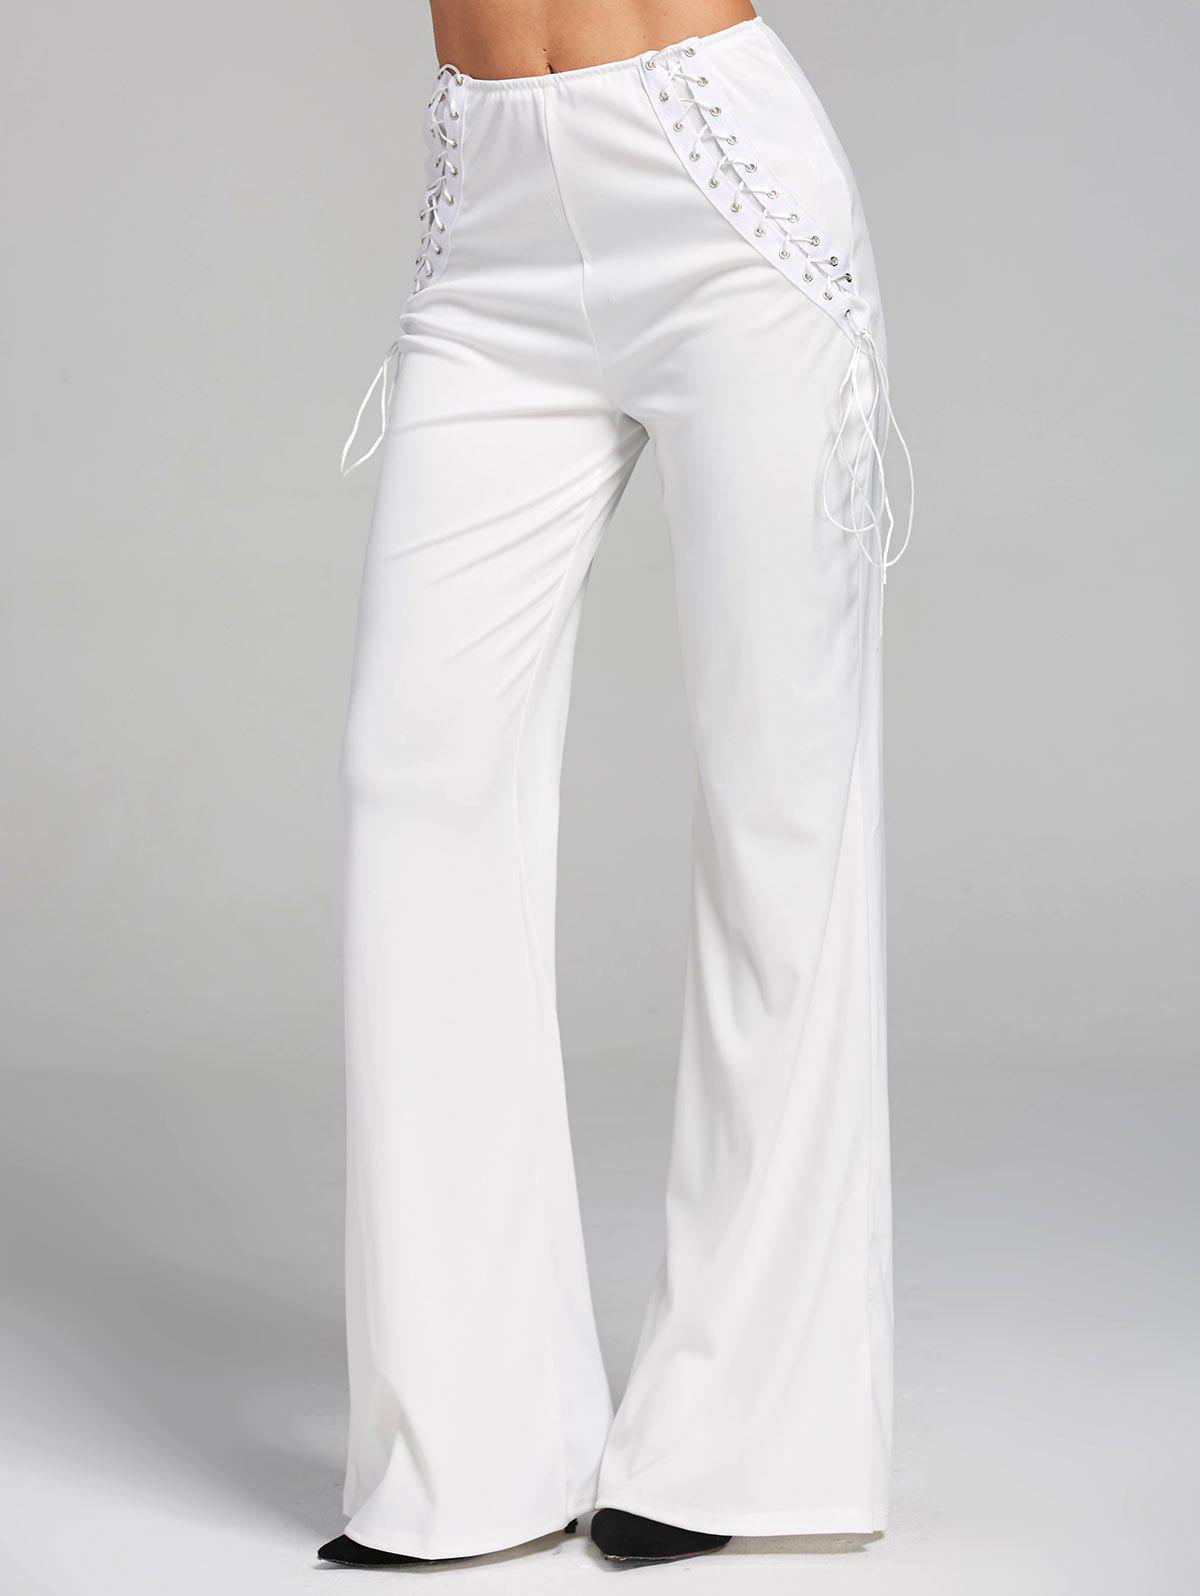 High Waist Criss Cross Lace Up Flare Pants - WHITE M